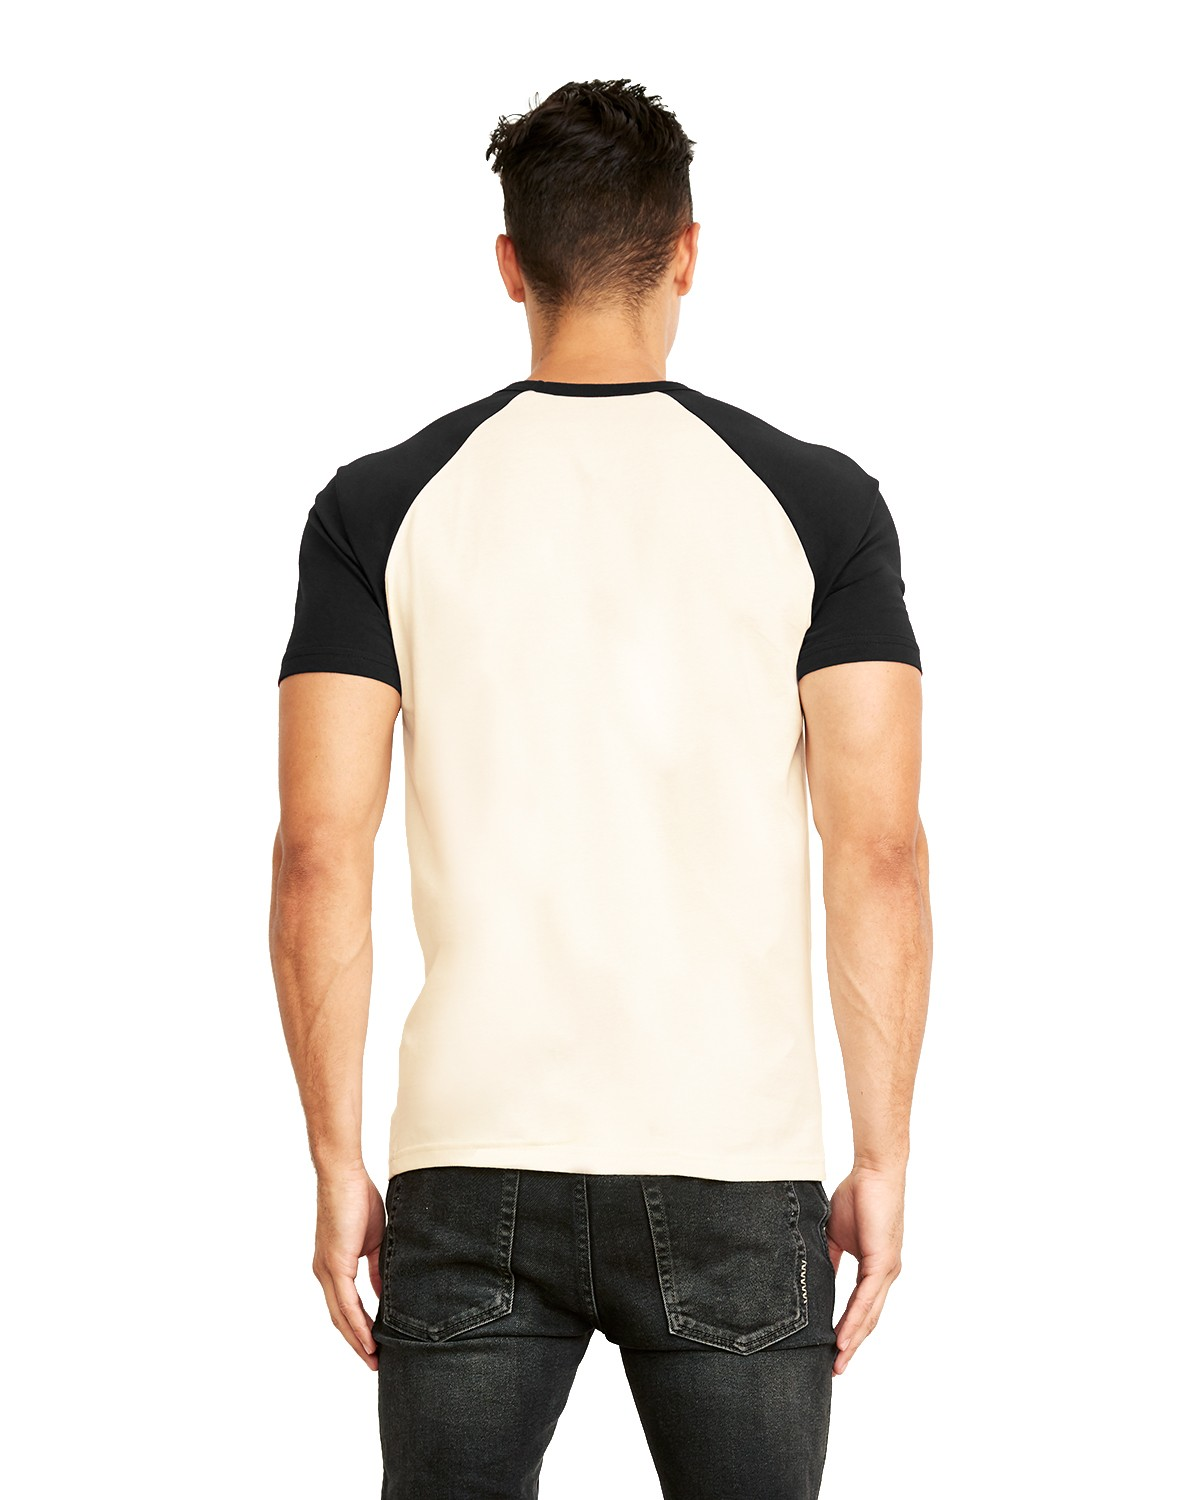 Buy American Apparel Bb453 Unisex Poly Cotton Baseball